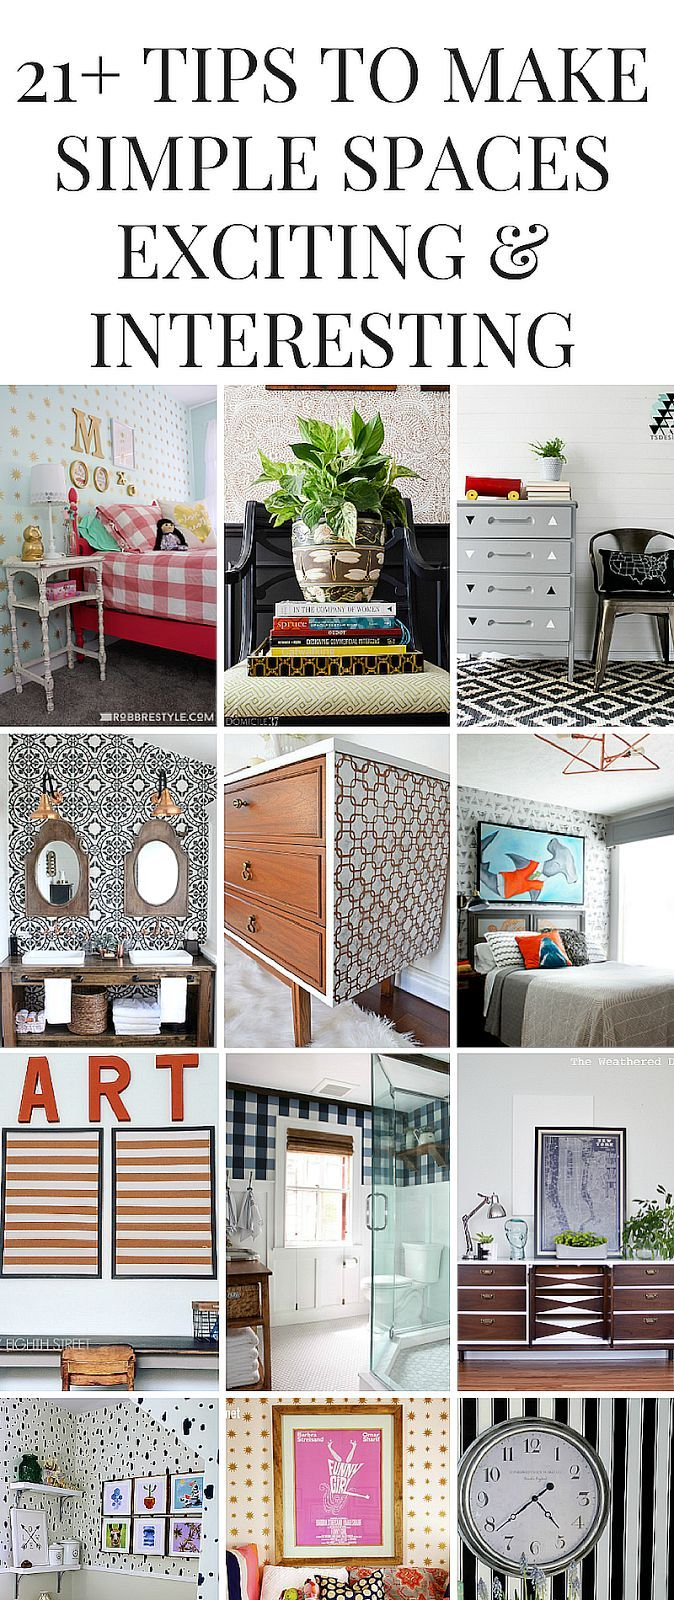 21+ budget friendly and simple ways to make a space more exciting and interesting! Add texture, color and design using wallpaper, paint, textiles and more!